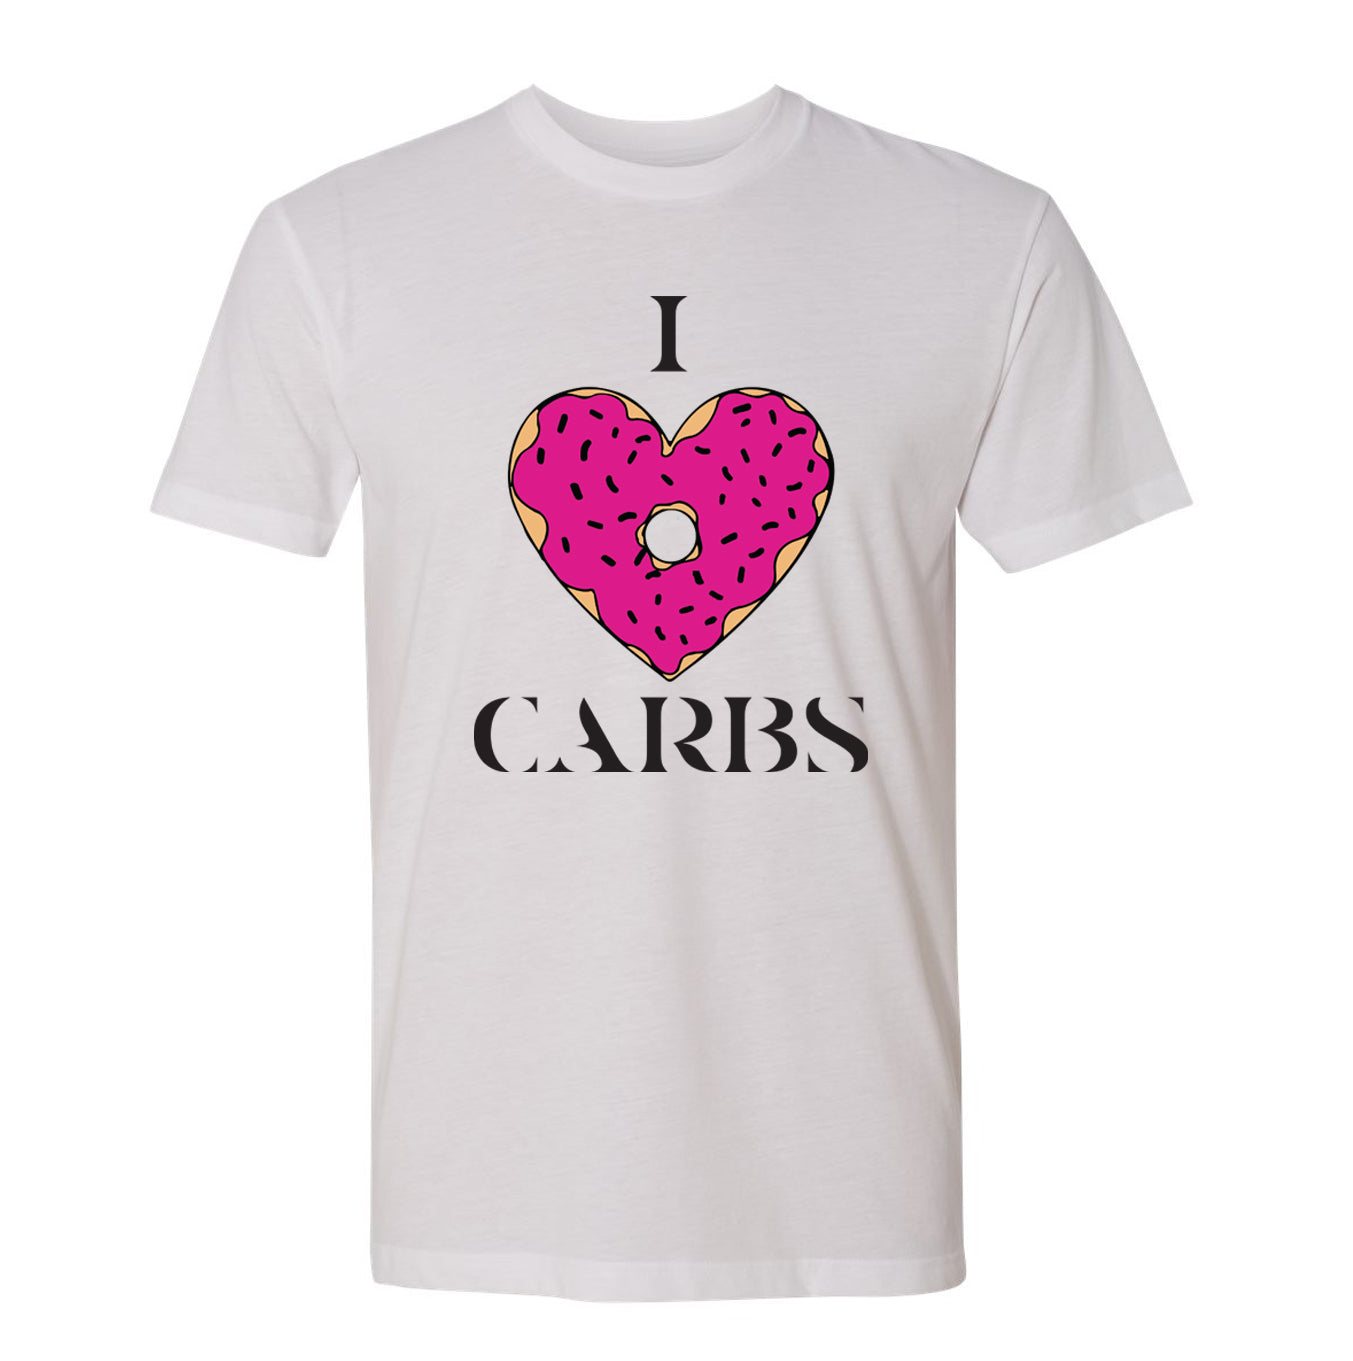 I Love Carbs Donut Tee (White)